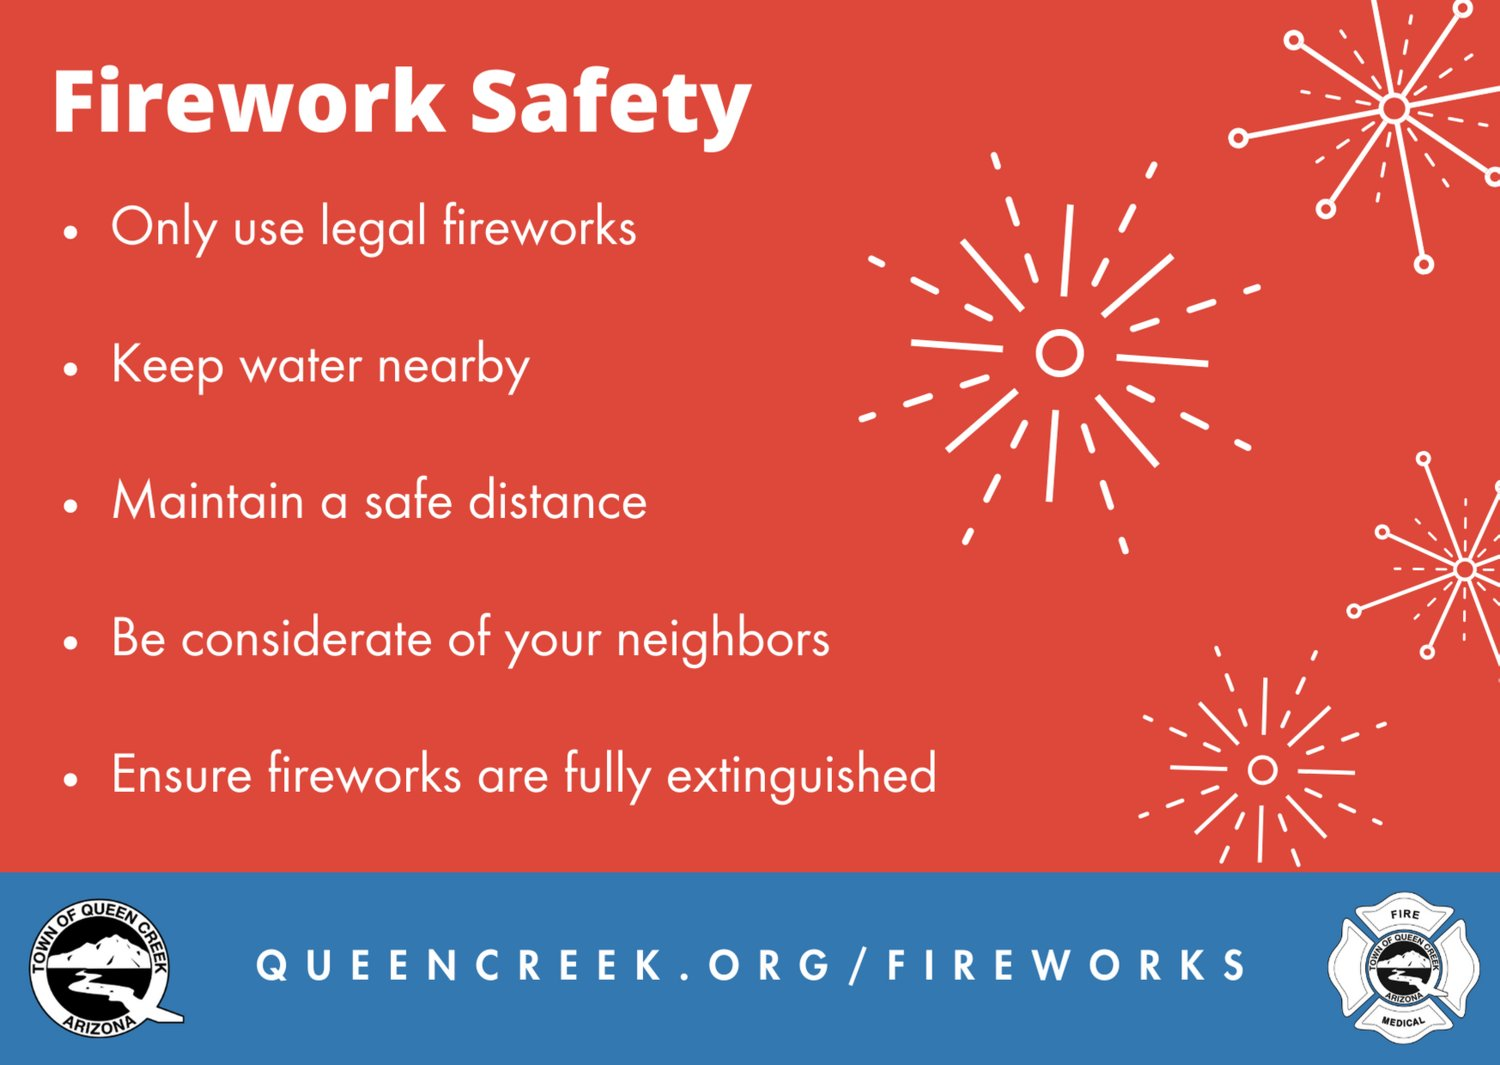 Not all fireworks are legal in Arizona. Legal consumer fireworks include ground and sparkling devices.